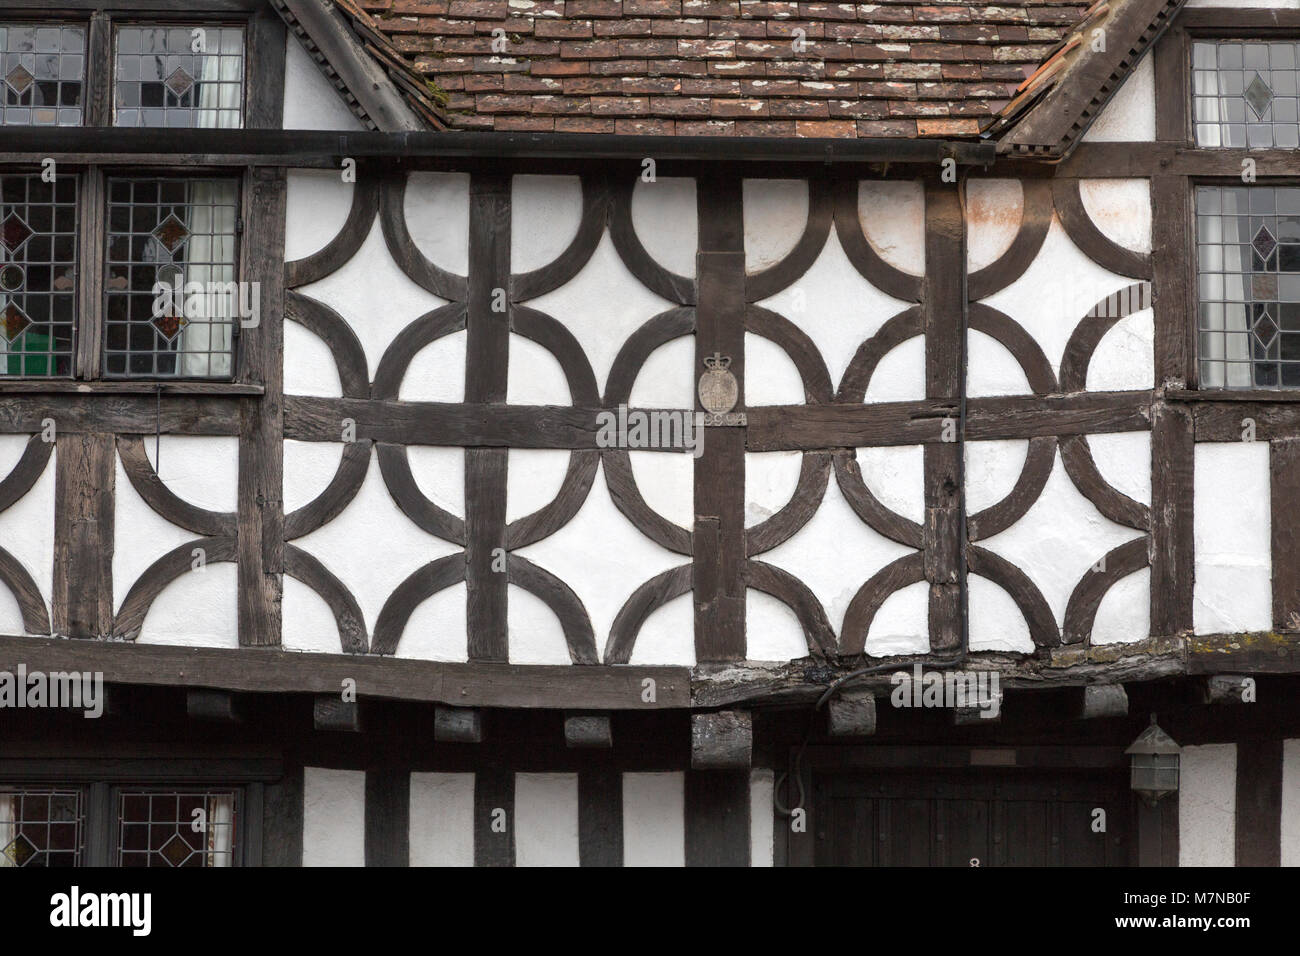 Sixteenth century half timbered architecture details of buildings in High Street, Potterne Wiltshire, England, UK - Stock Image